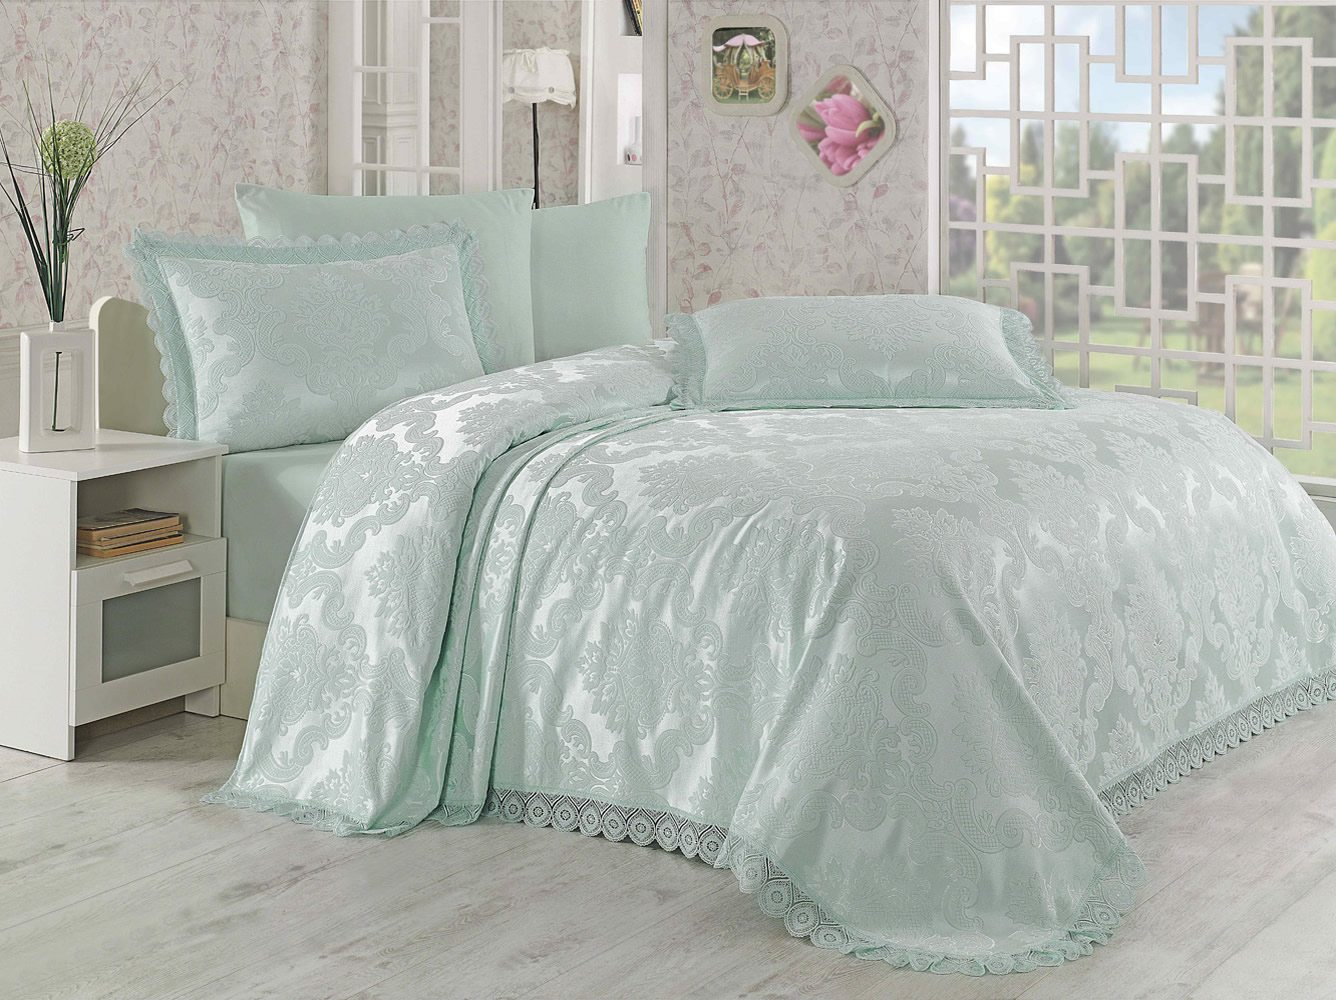 jacquard bedspread with two decorative pillowcases